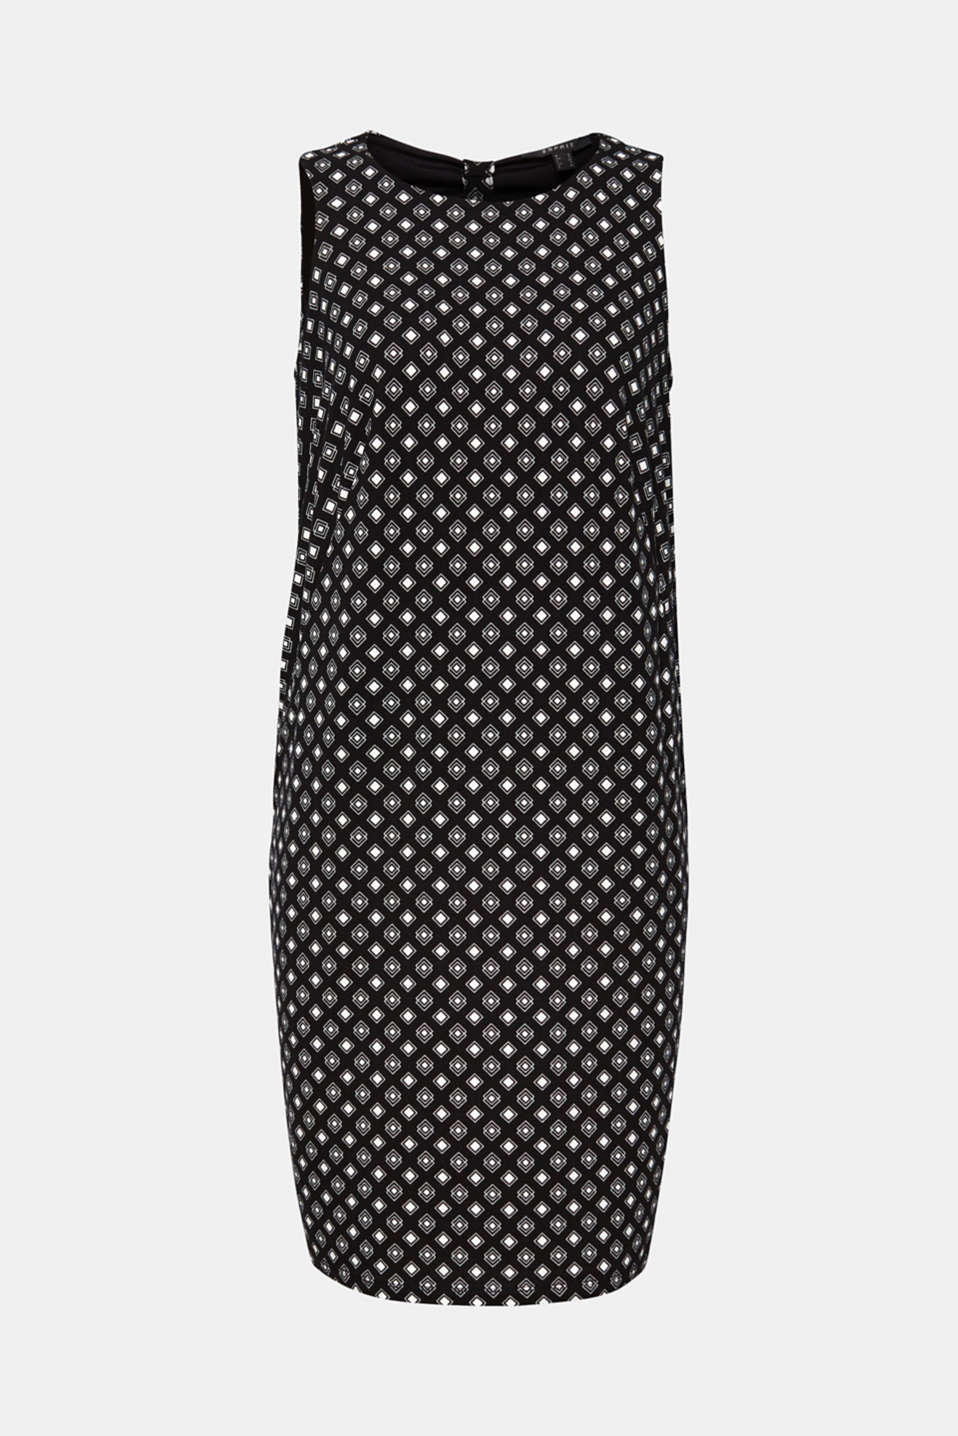 O-shaped dress made of patterned stretch jersey, BLACK 2, detail image number 6